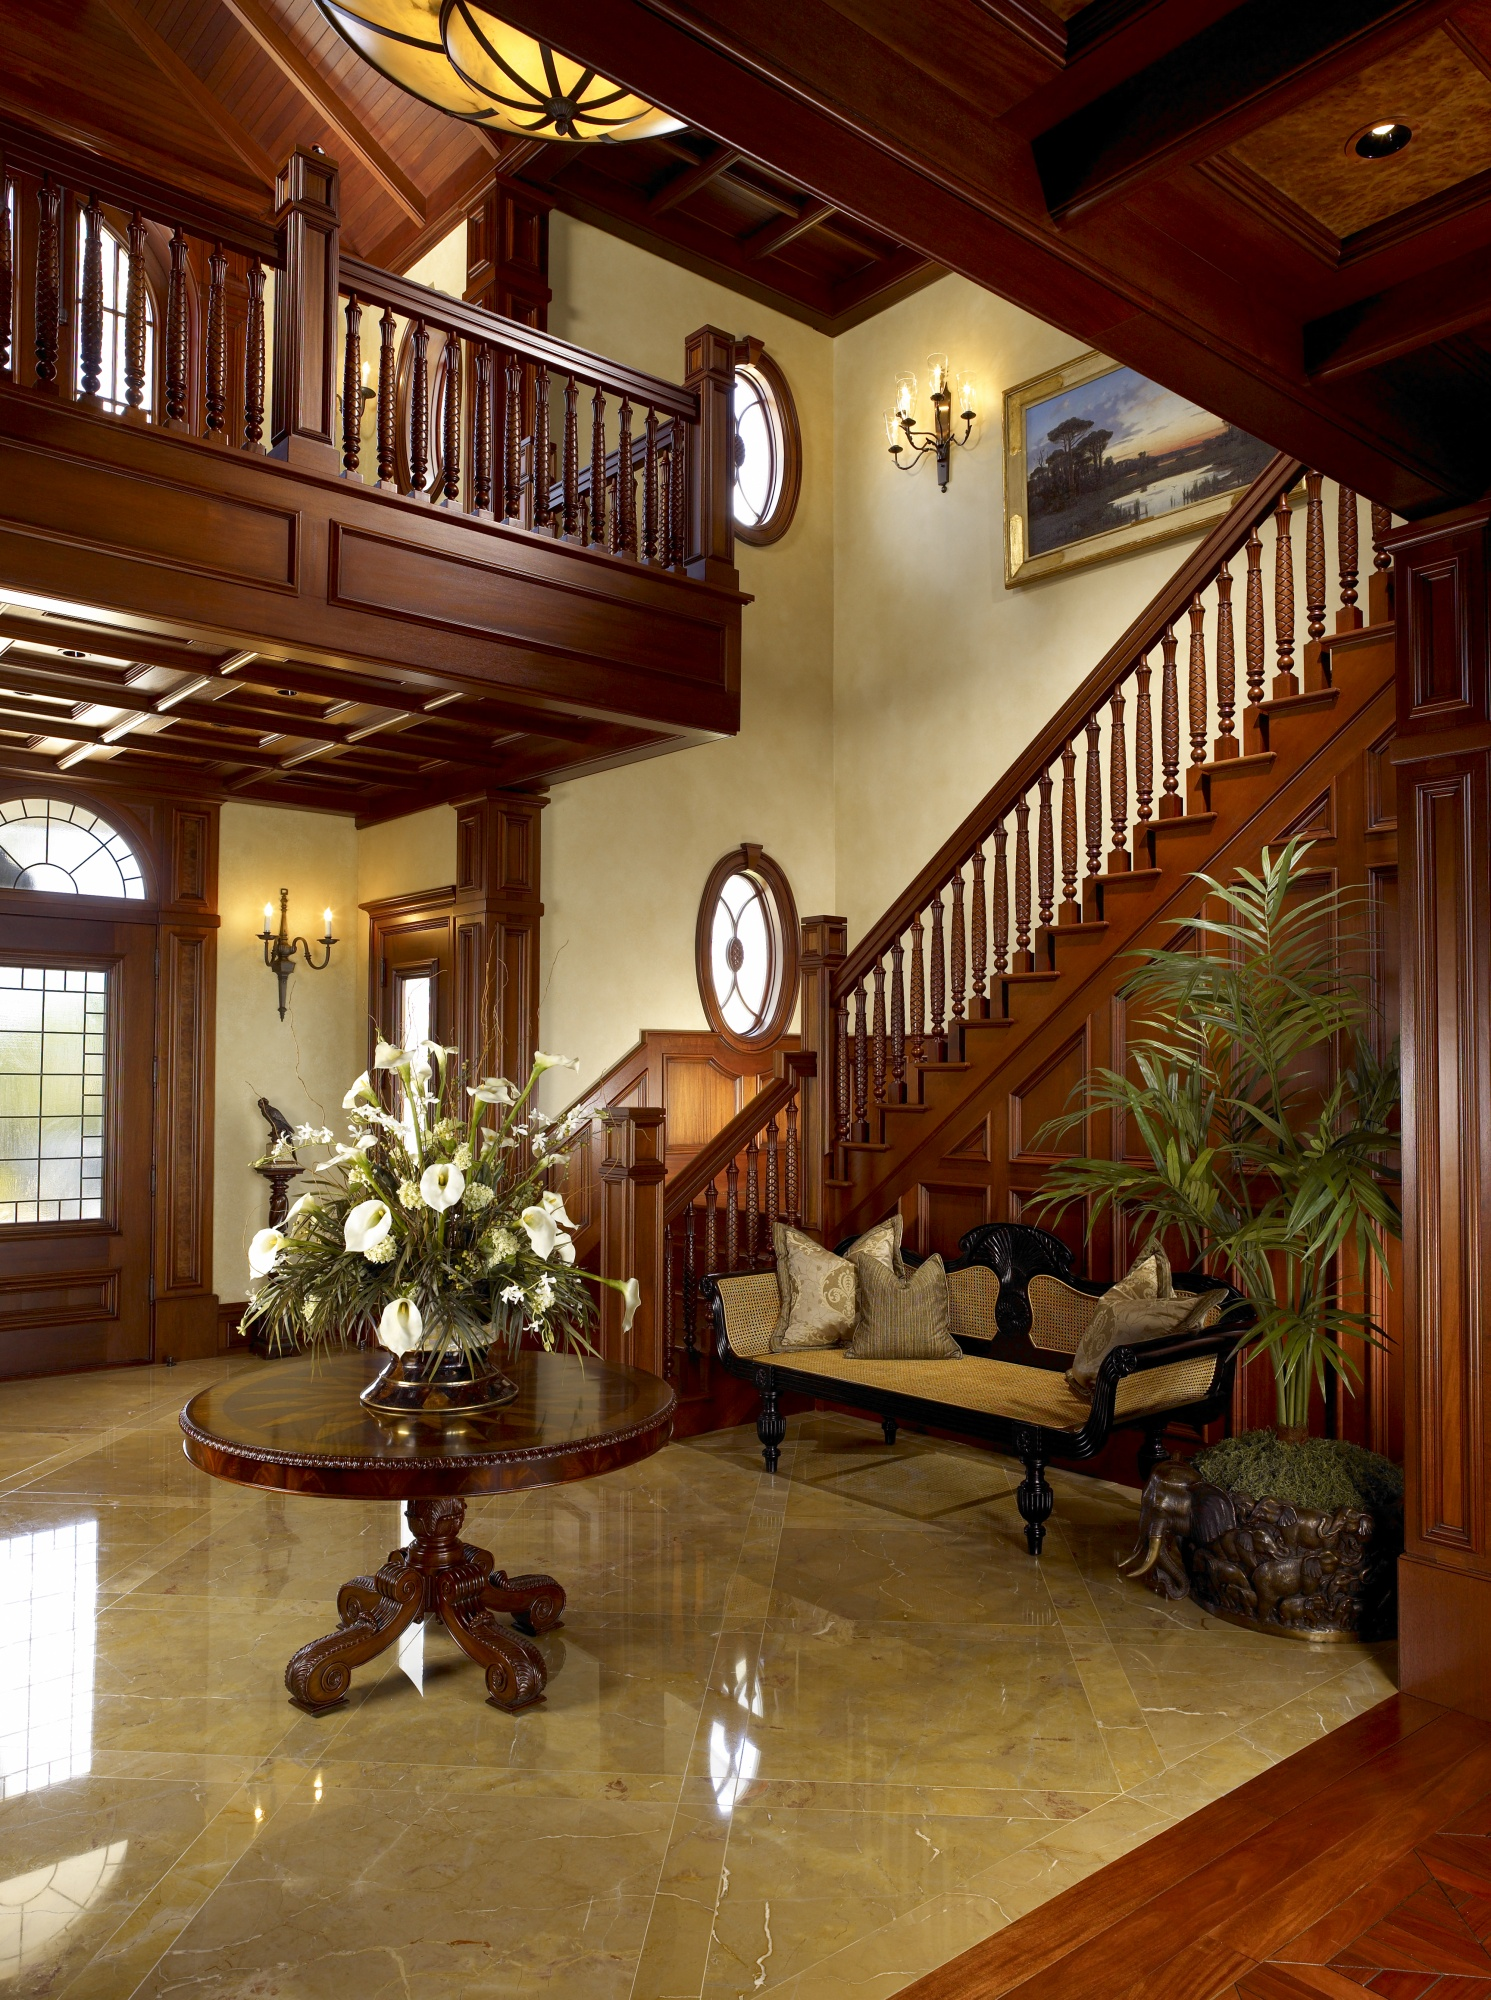 Hand carved mahogany banisters provide beauty to this entry stair.